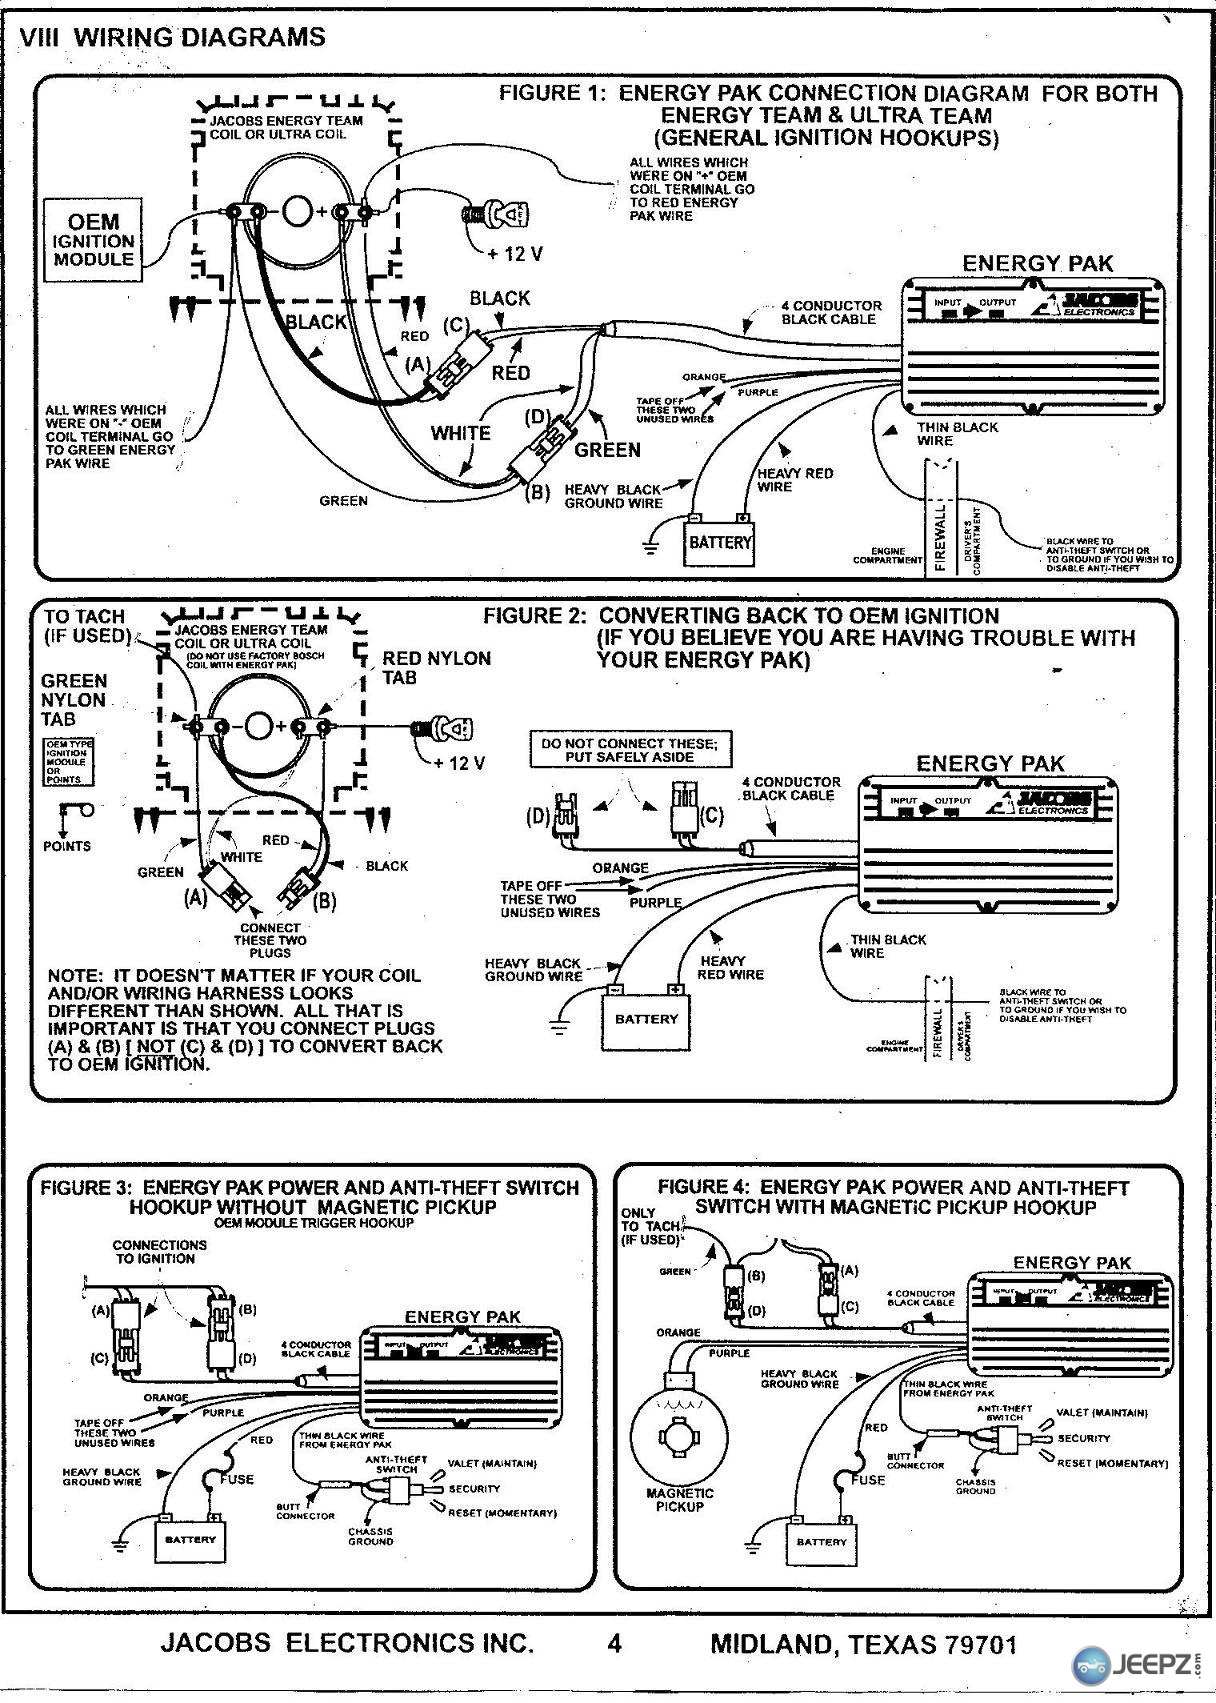 2965d1246241329 jacobs ignition jeepz jacobs ignition diagram?resize\\\\d665%2C931\\\\6ssl\\\\d1 jacobs electronics wire diagram wiring diagrams jacobs electronics omni pak wiring diagram at bayanpartner.co